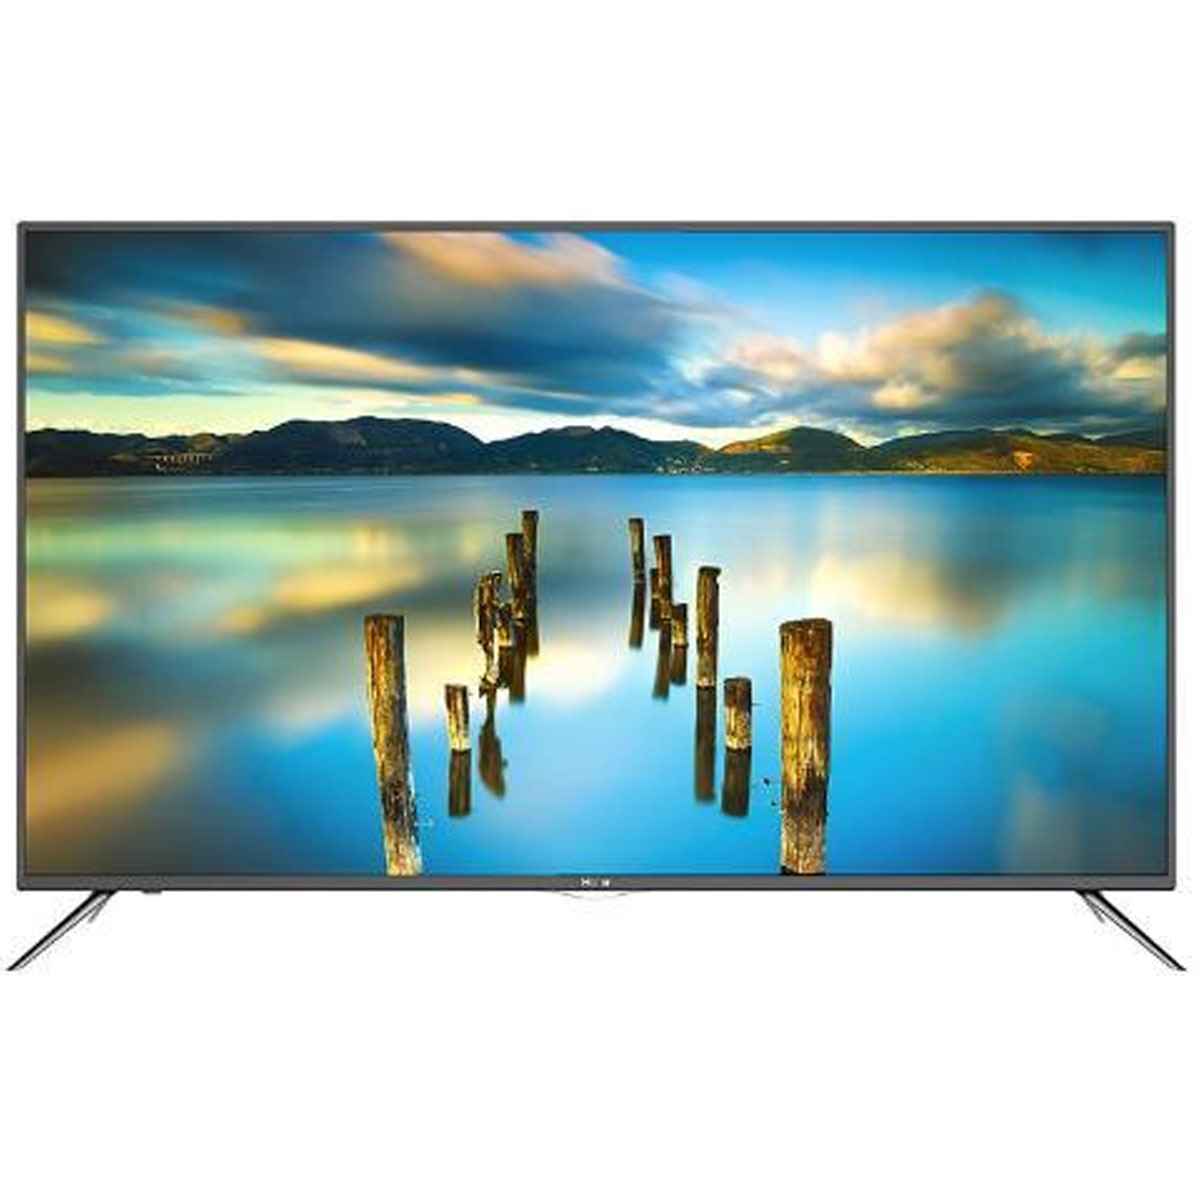 Haier 55 Inch 4K Smart LED TV (K6600UG)